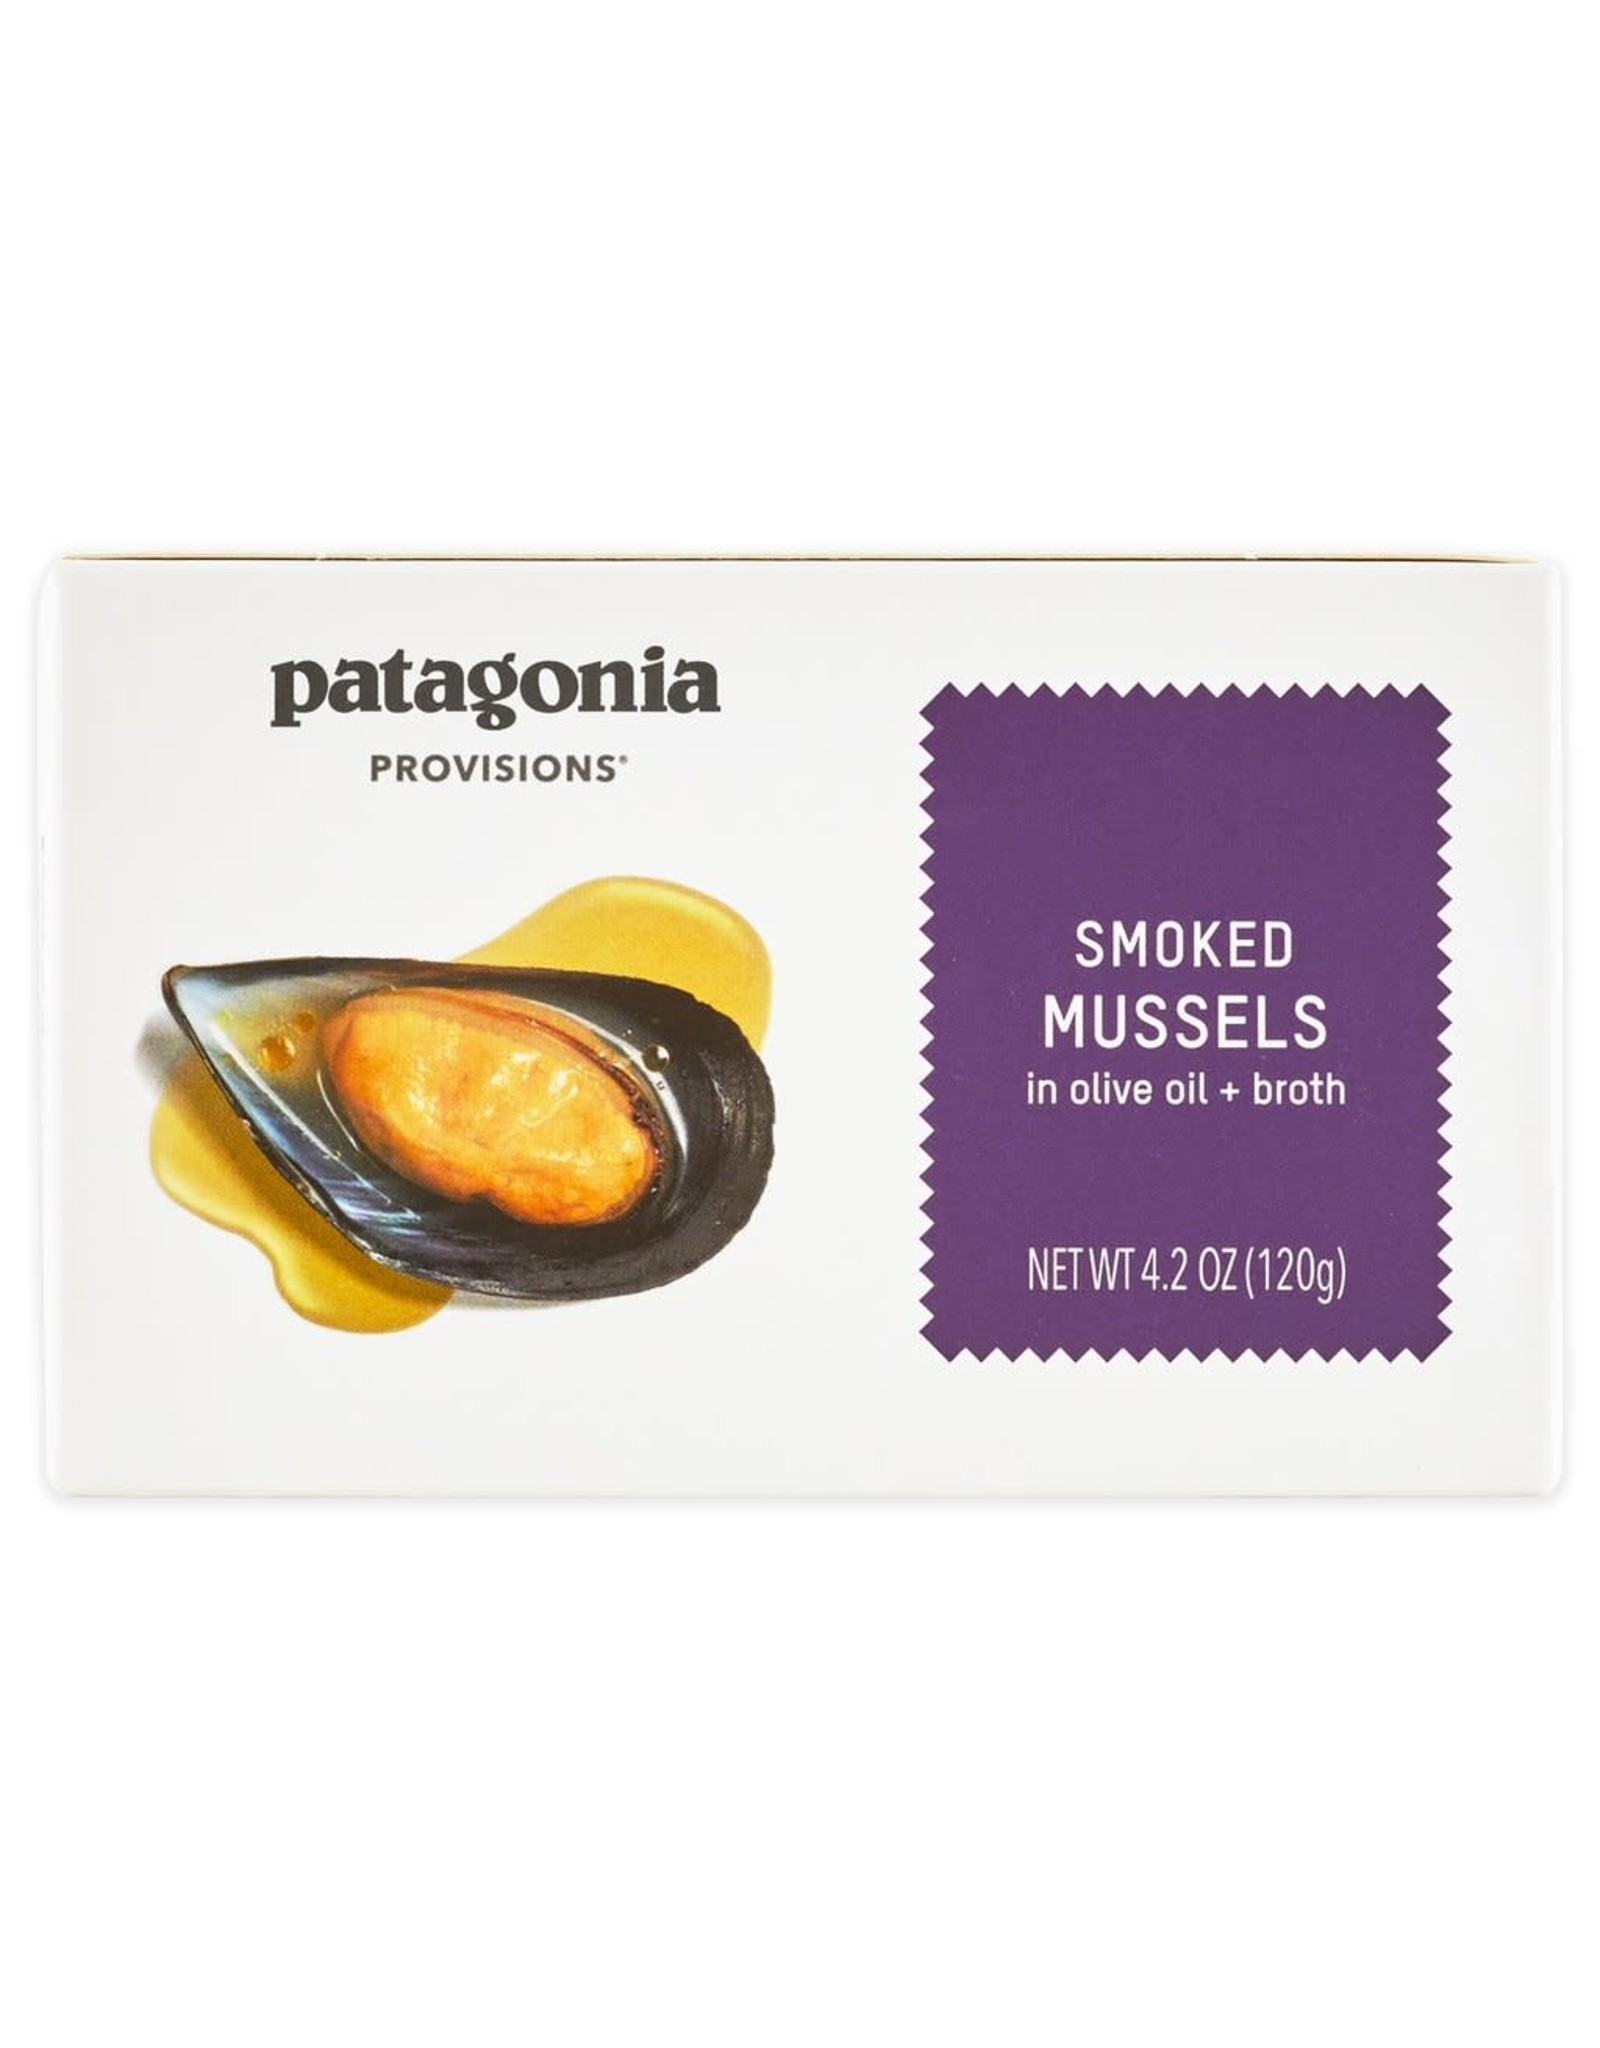 Patagonia Provisions Patagonia Provisions, Smoked Mussels